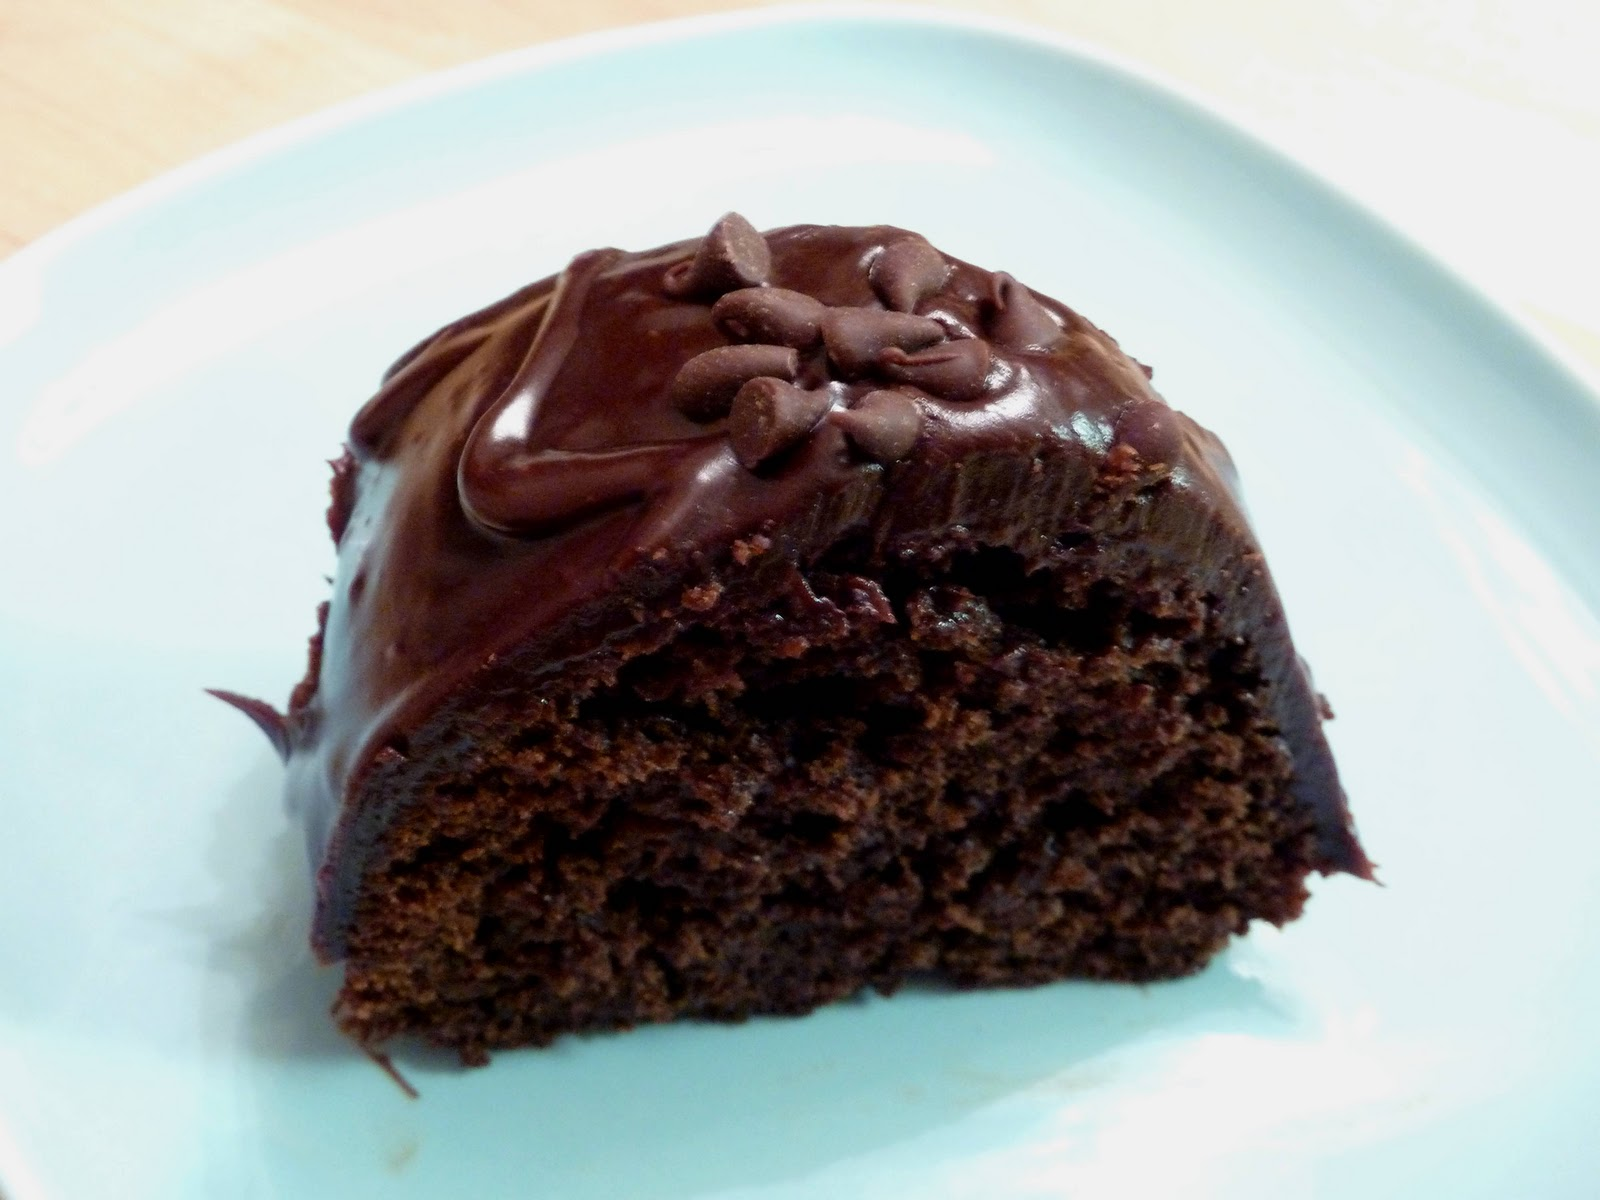 Dinner with Denise: Chocolate Sour Cream Bundt Cake